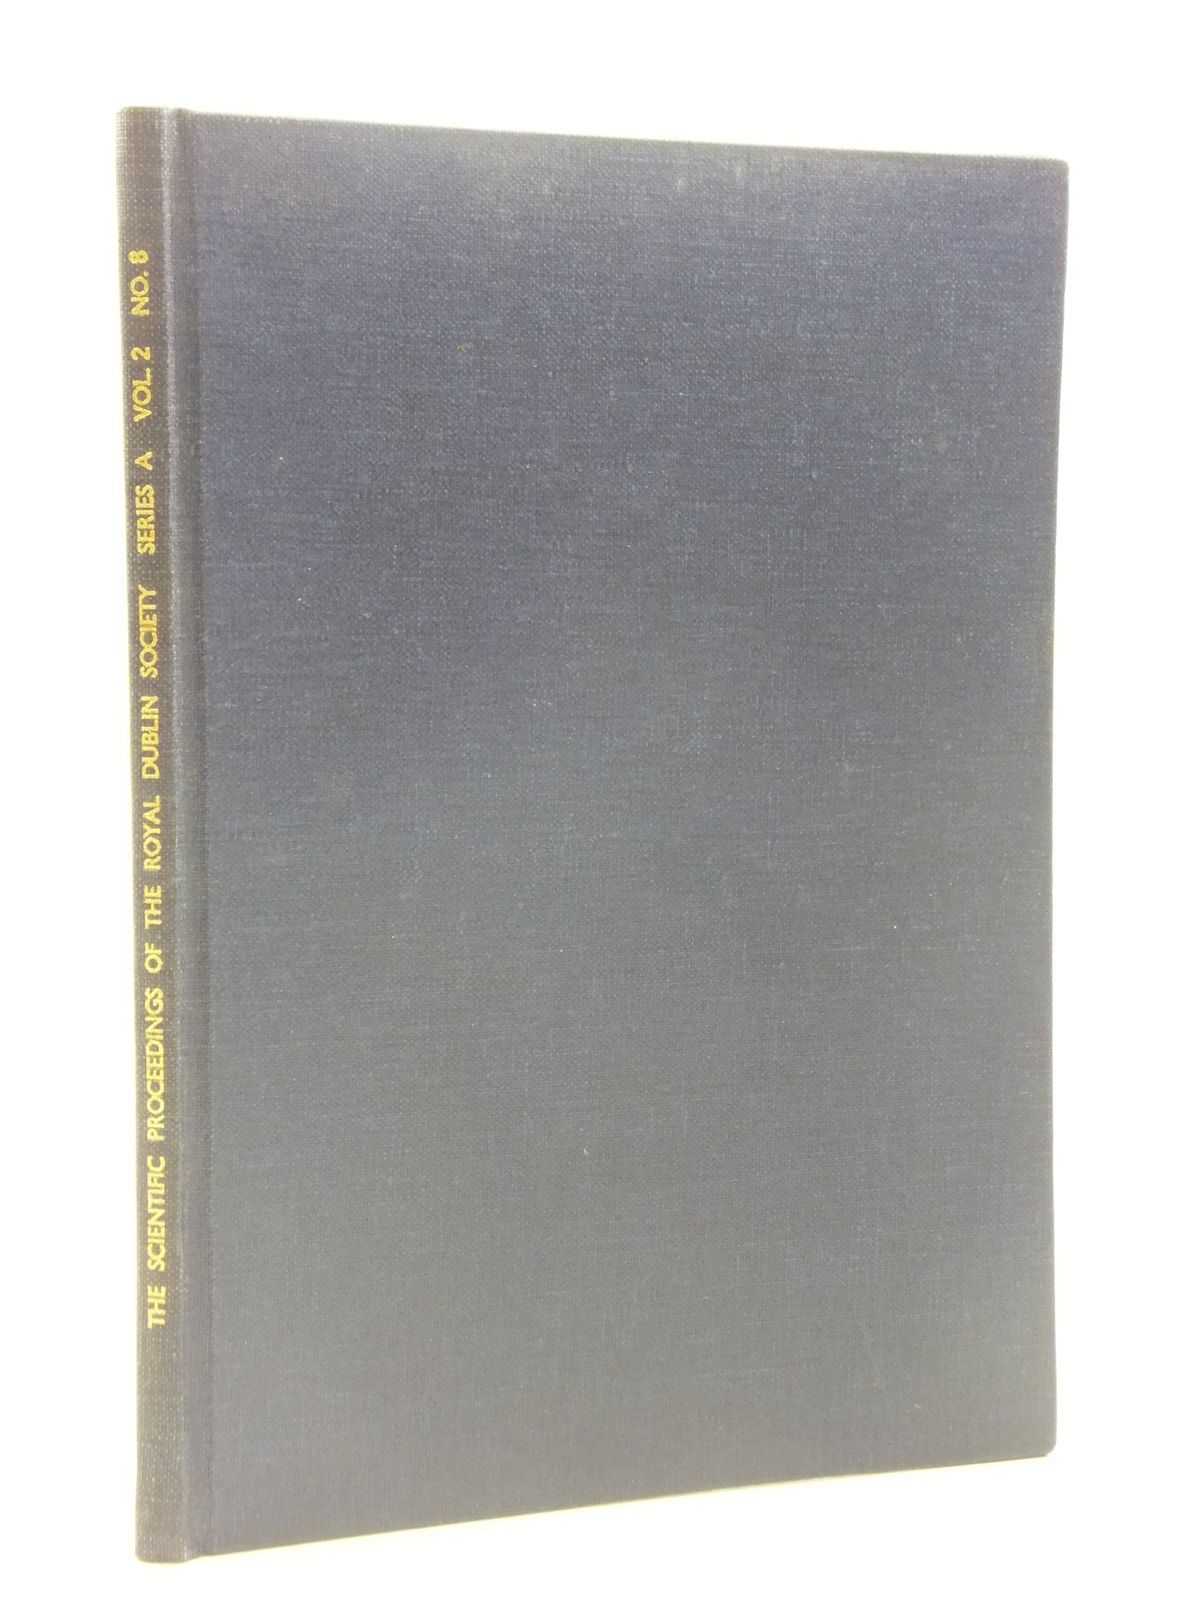 Photo of THE SCIENTIFIC PROCEEDINGS OF THE ROYAL DUBLIN SOCIETY SERIES A VOL. 2 No. 8 written by Jackson, John S. (STOCK CODE: 1605325)  for sale by Stella & Rose's Books